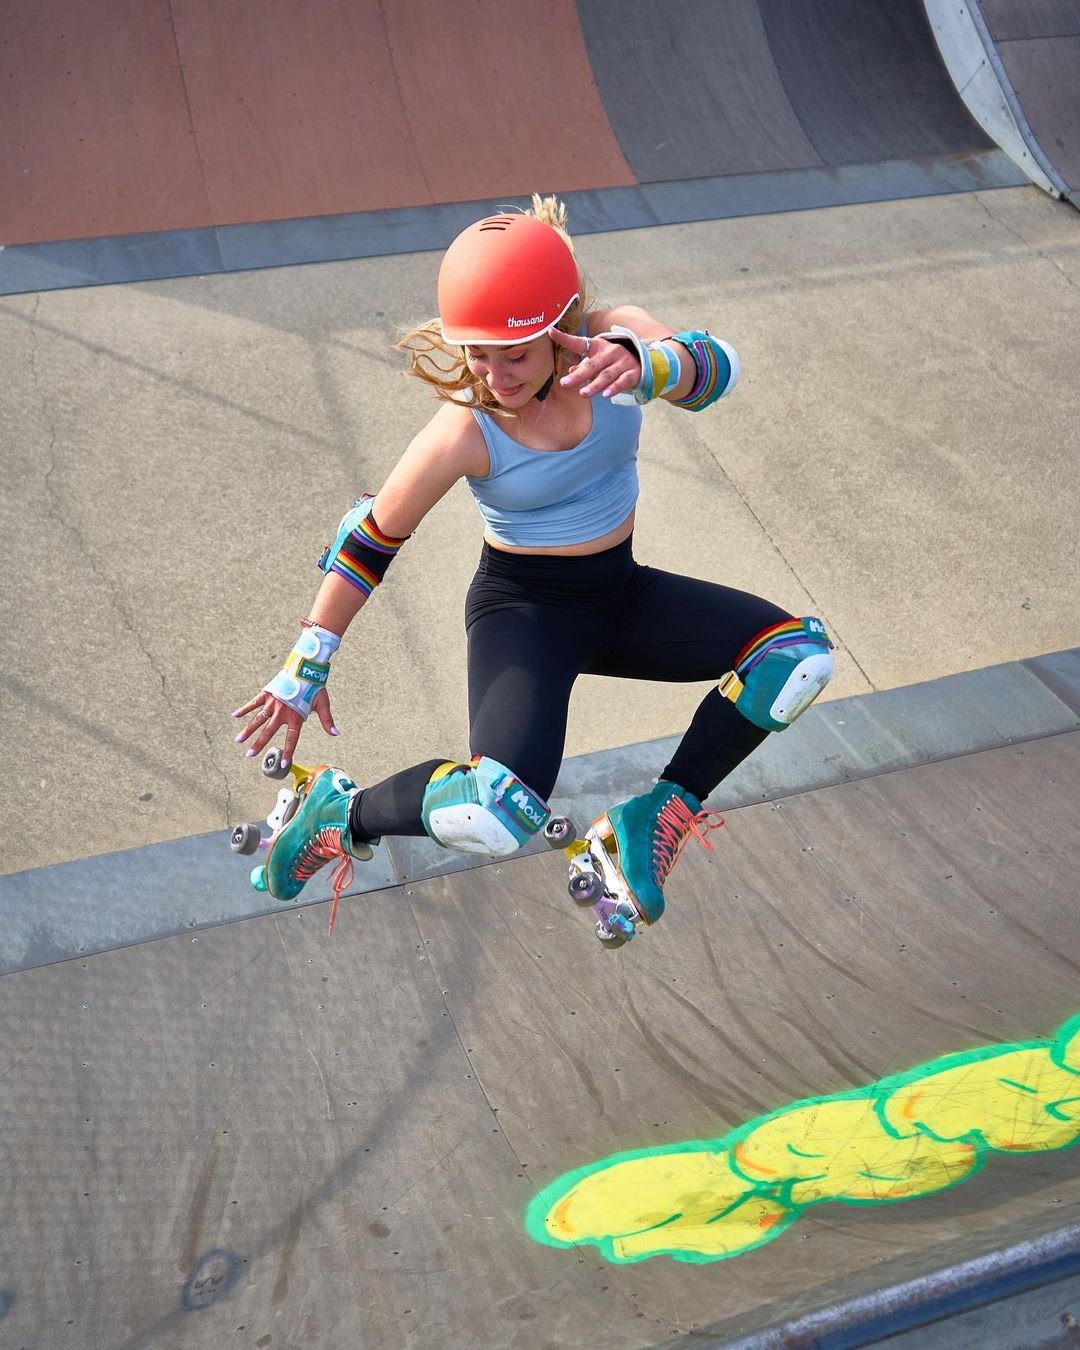 person skating and wearing a Thousand helmet